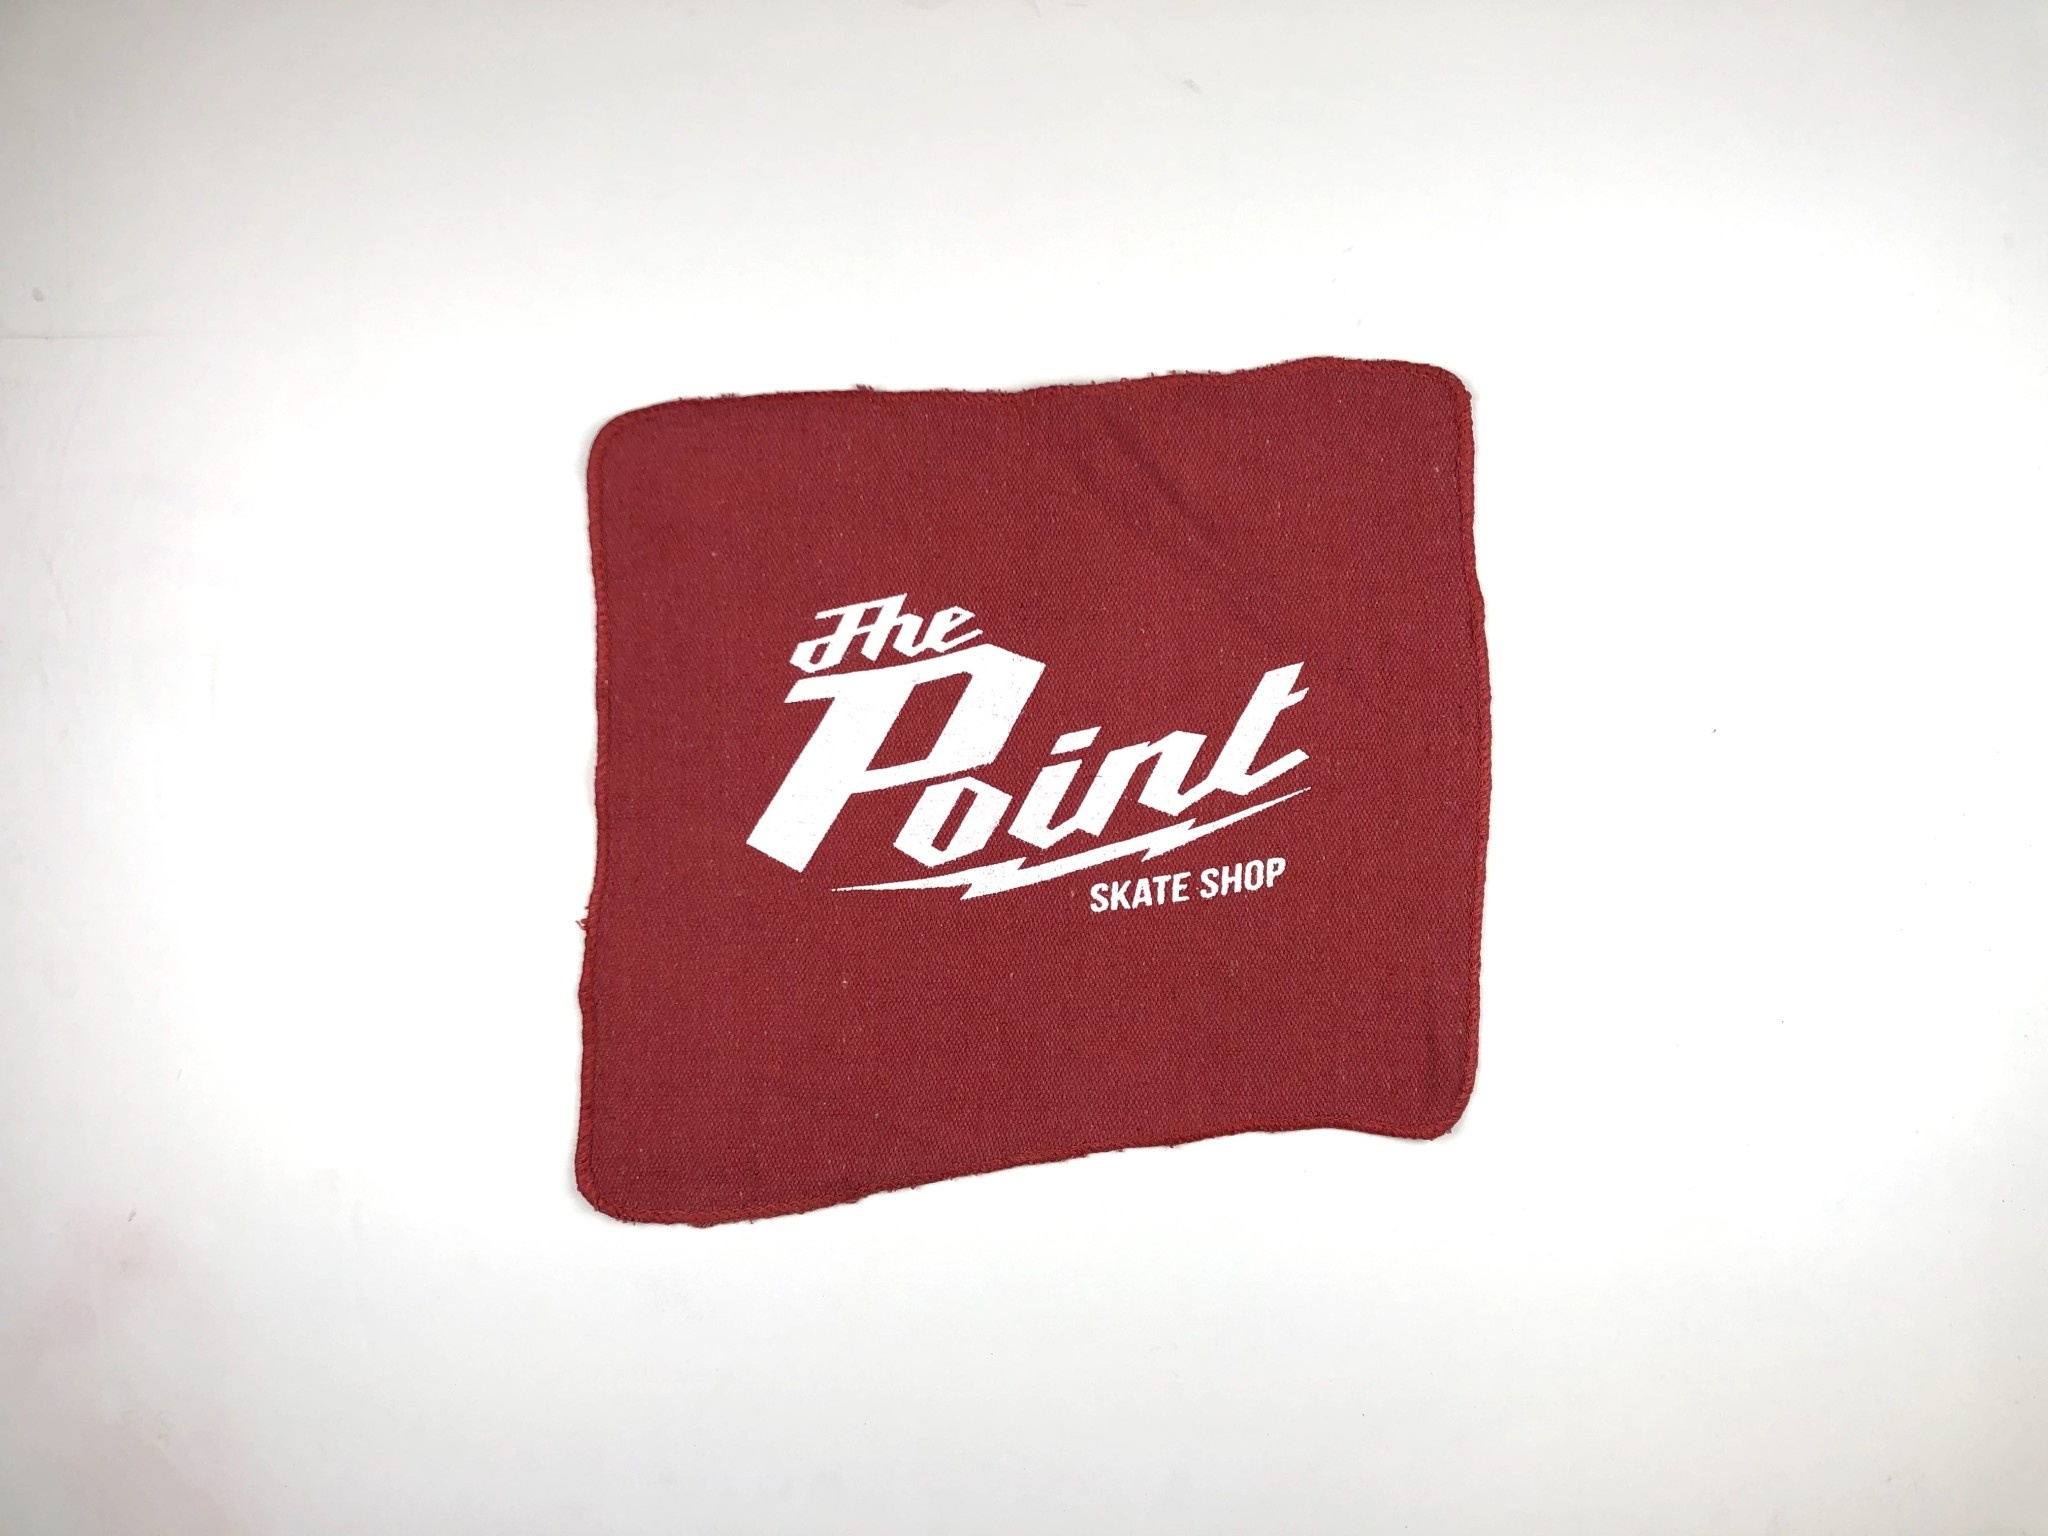 The Point The Point - Millie Shop Rag